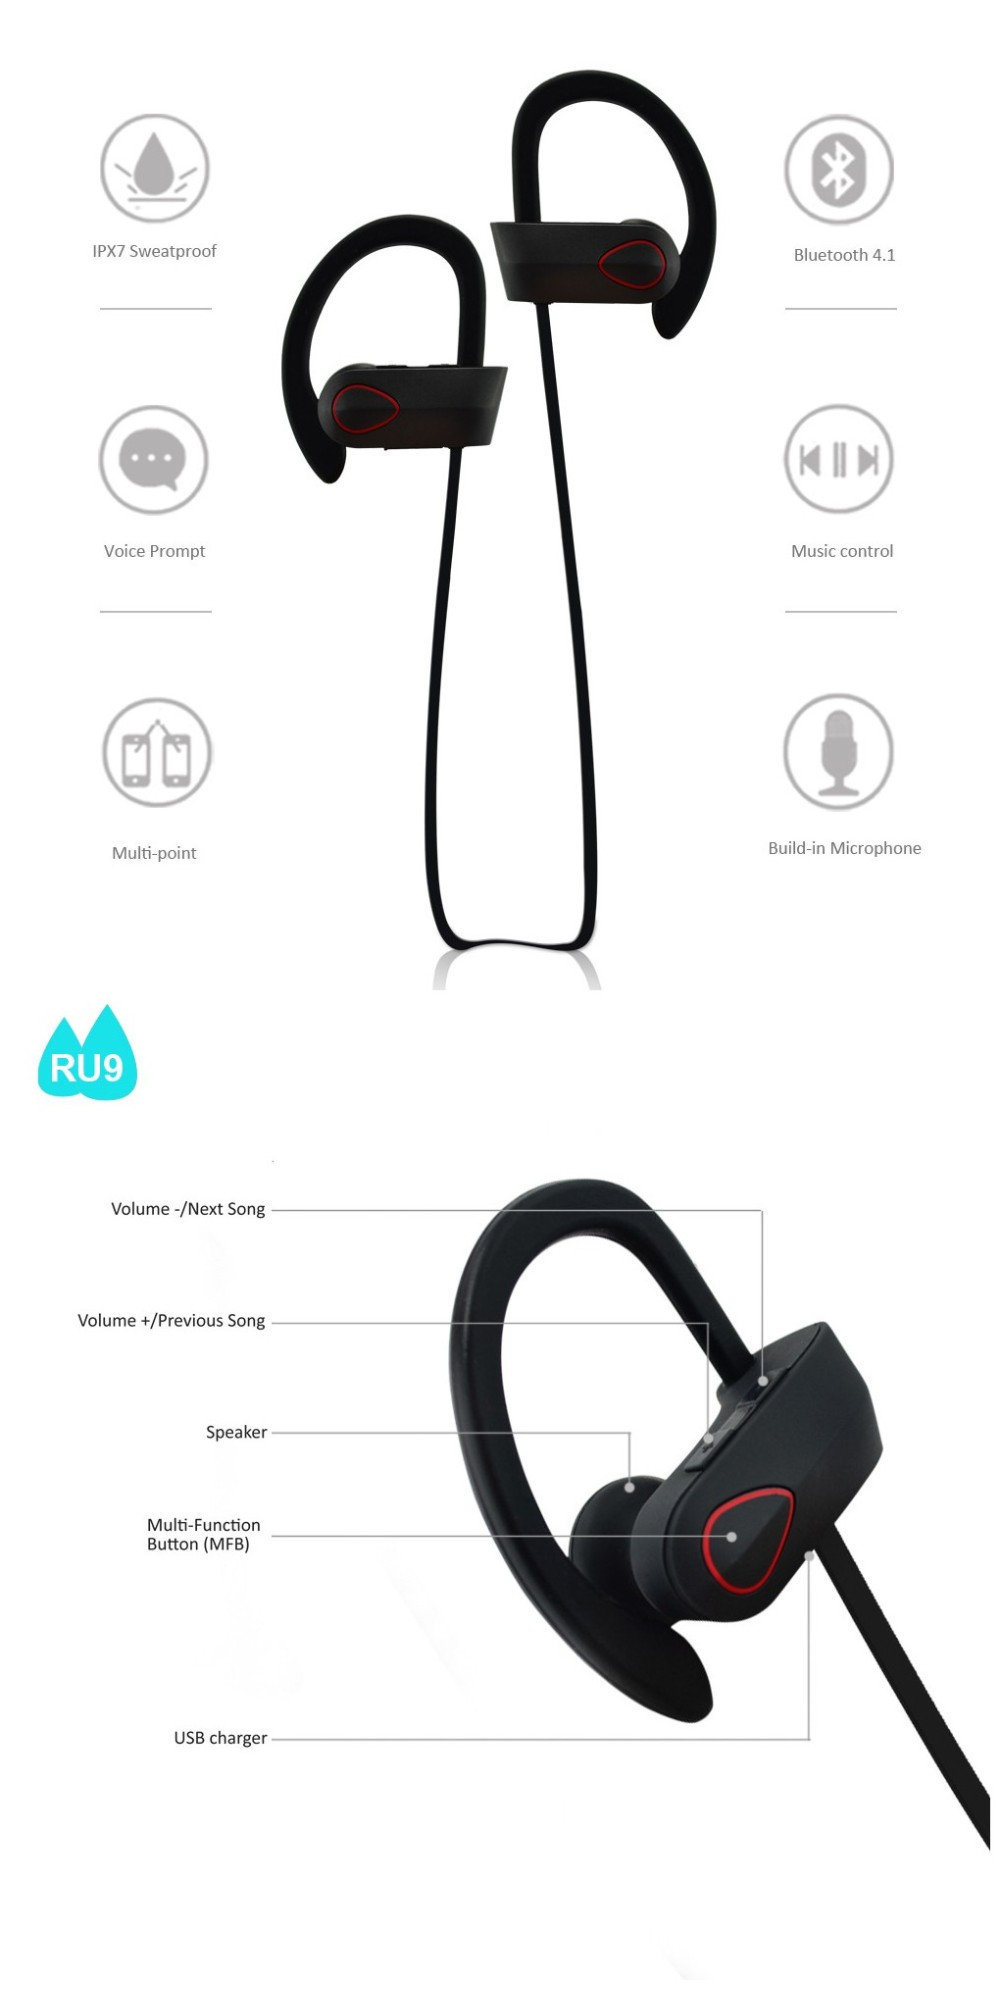 Amazon best seller senso IPX7 waterproof bluetooth 4.1 wireless stereo mobile headphone stereo bluetooth headset RU9